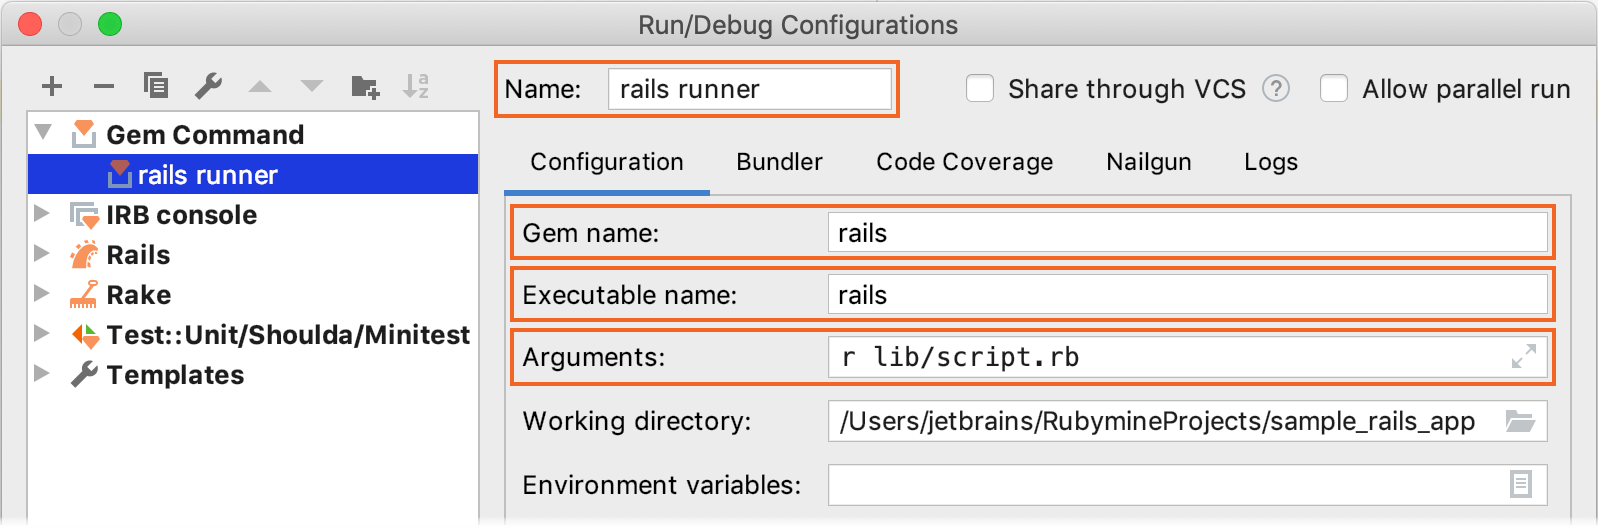 Run/Debug Configuration